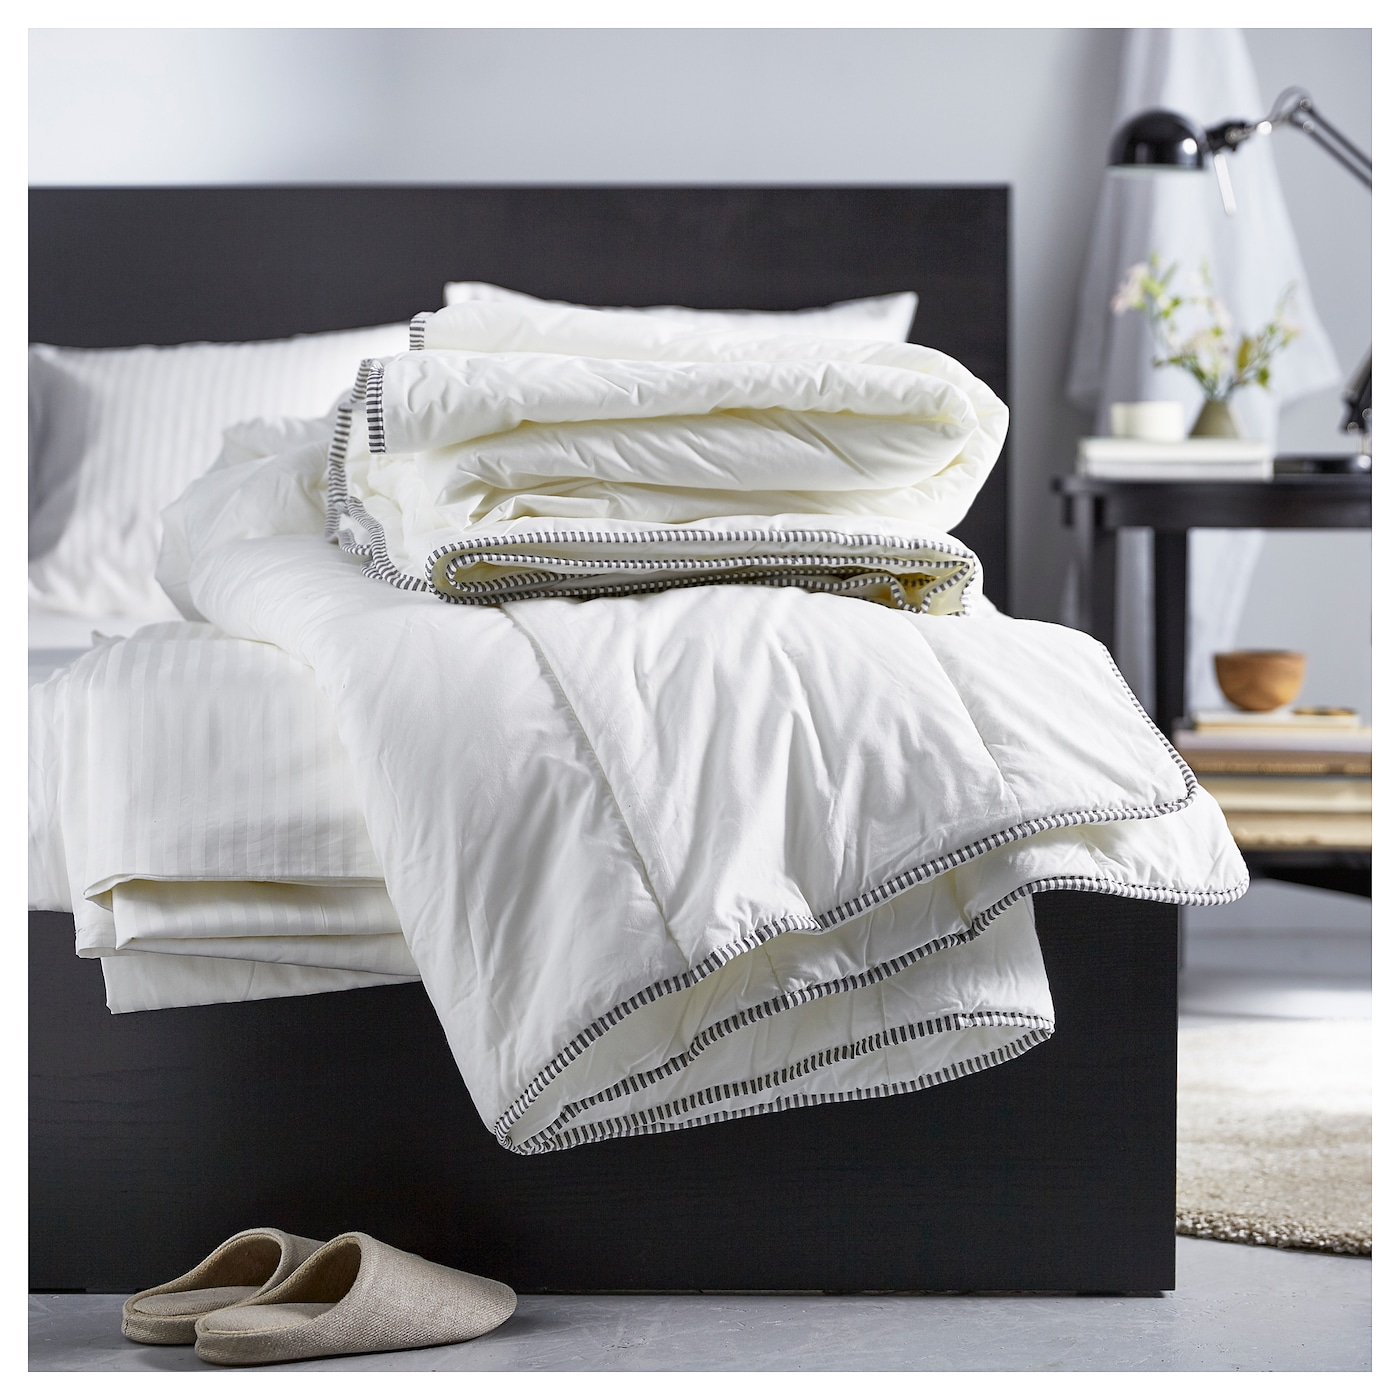 IKEA RÖDTOPPA duvet, 12 TOG A good choice if you need extra warmth while sleeping.